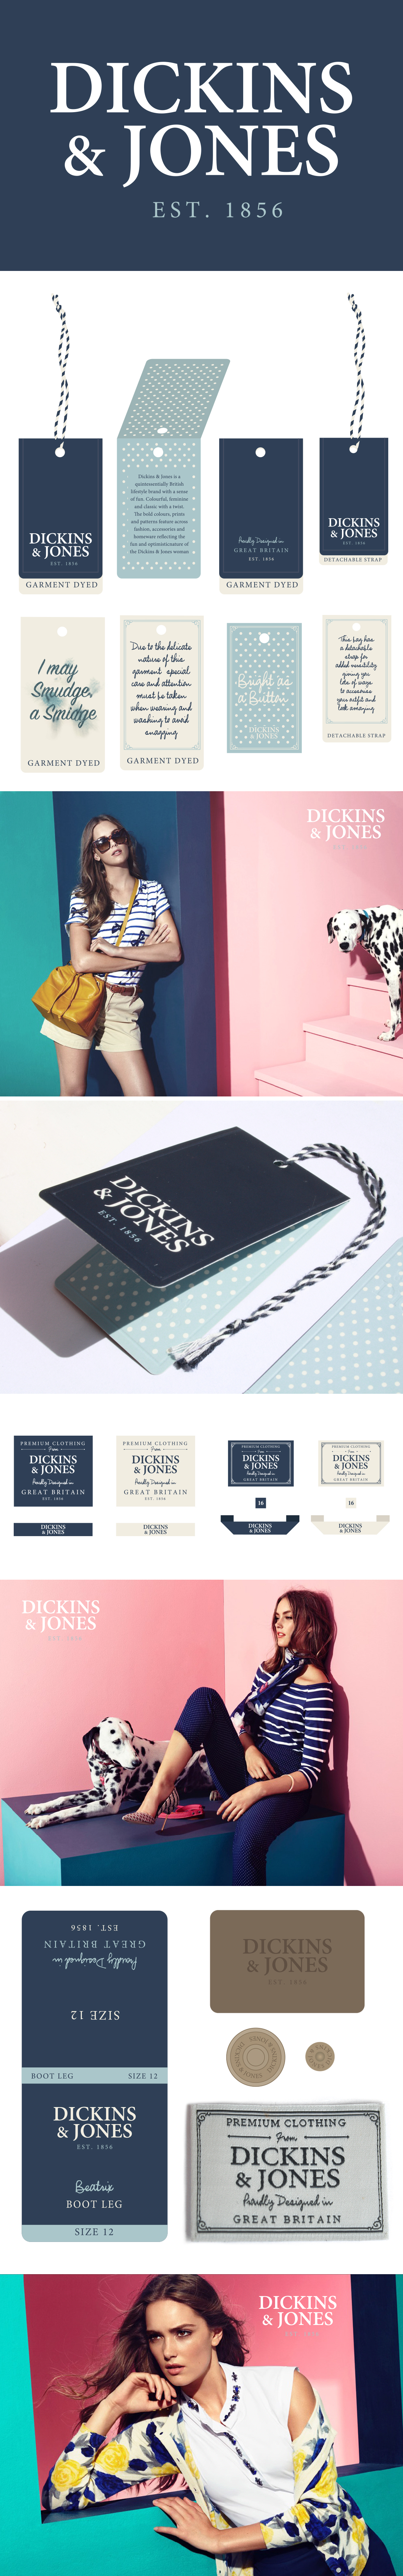 dickins & jones branding long